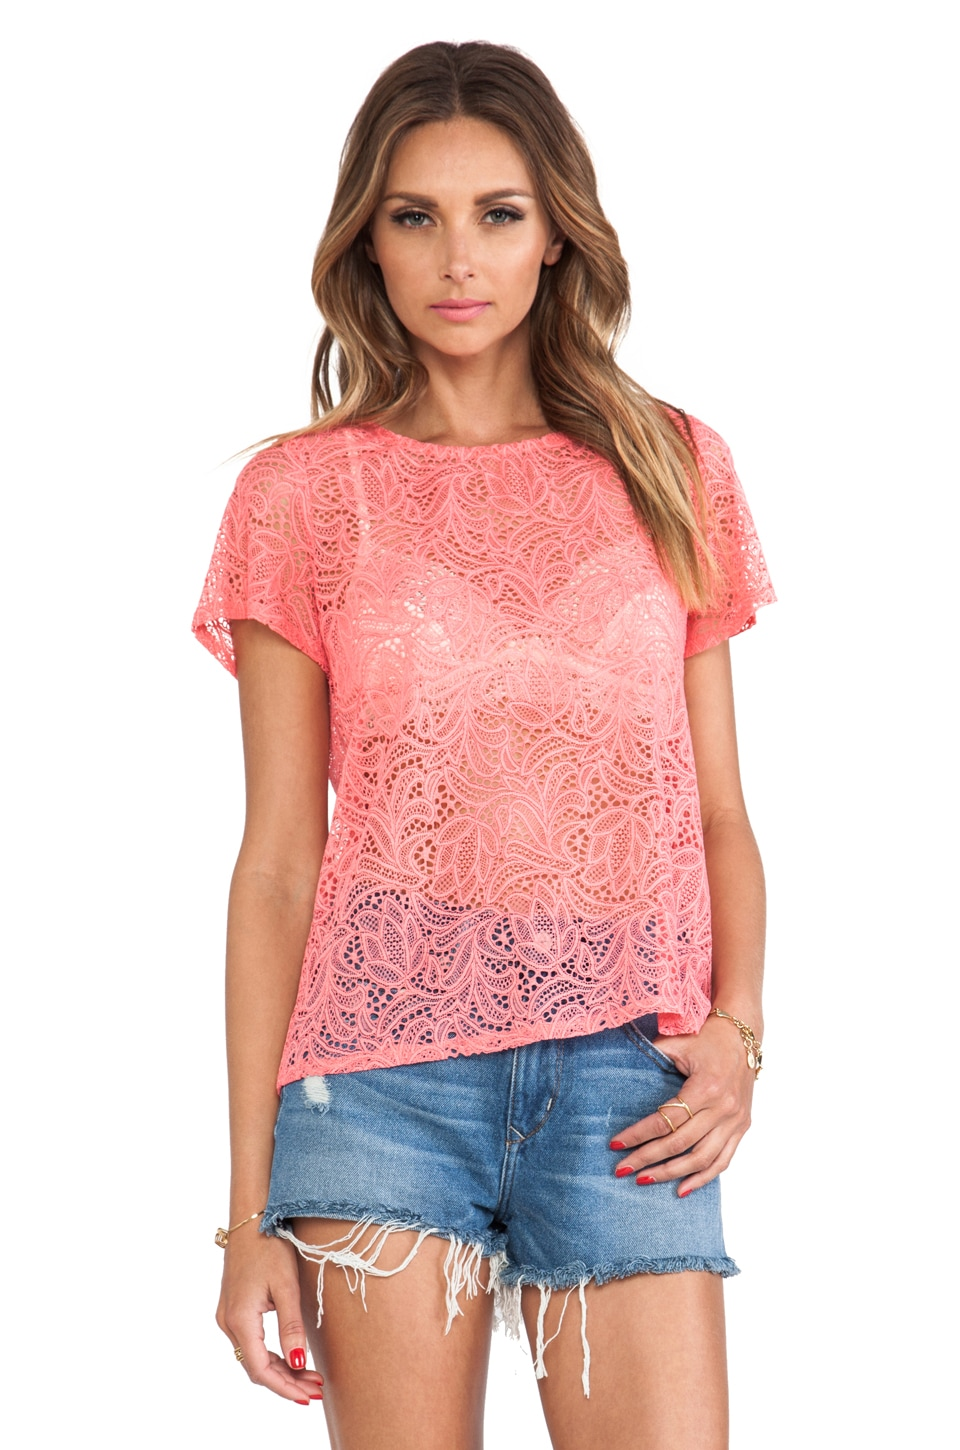 For Love & Lemons Baby Cakes Lace Top in Bubblegum Pink